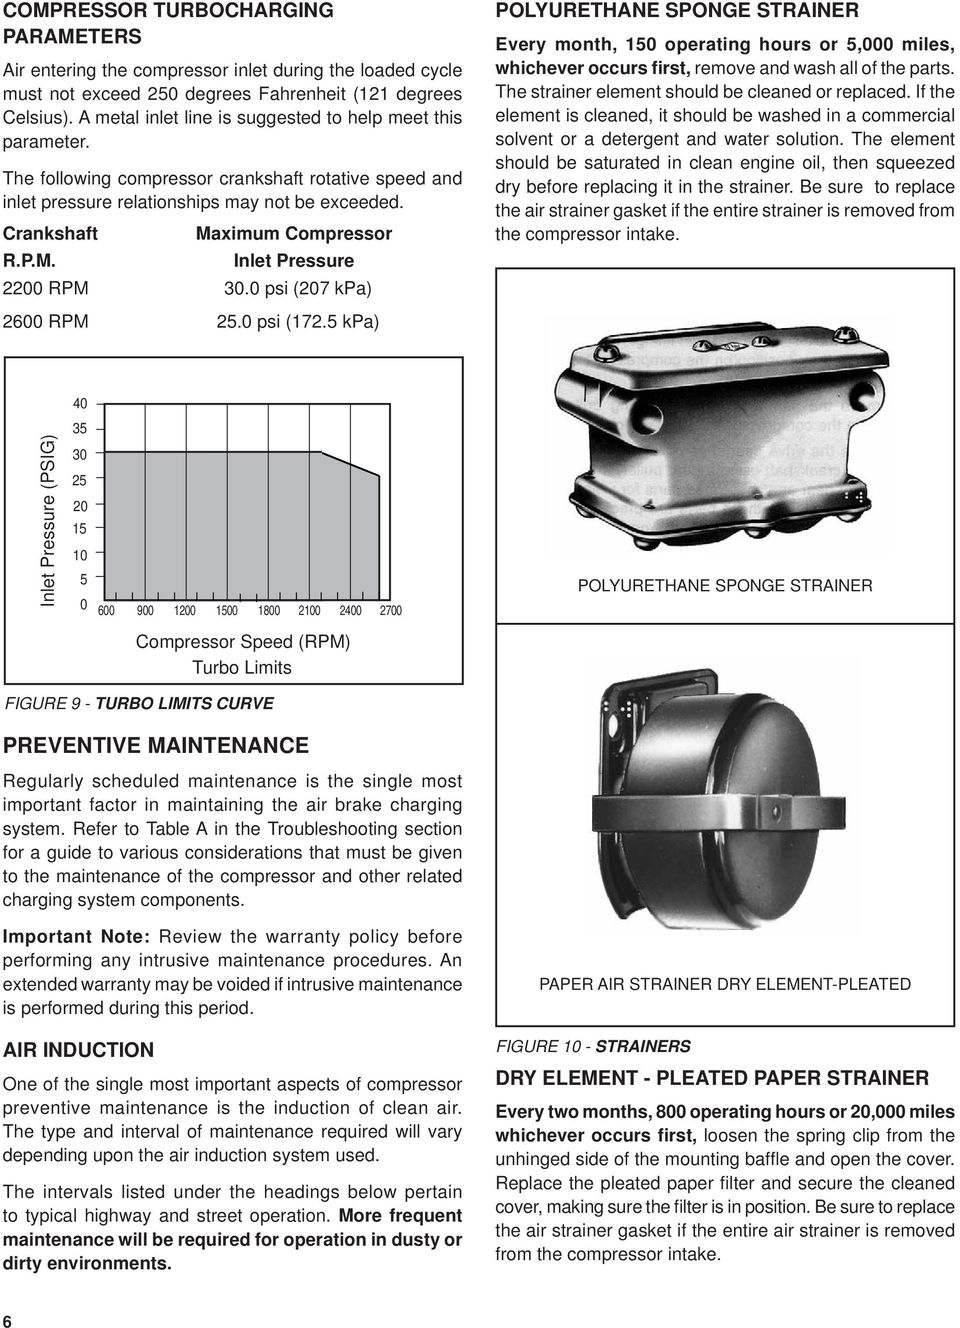 Sd Bendix Tu Flo 550 Air Compressor Description Pdf Open The Bag Of Parts And Make Sure You Have All Listed M Inlet Pressure 2200 Rpm 300 Psi 207 Kpa Polyurethane Sponge Strainer Every